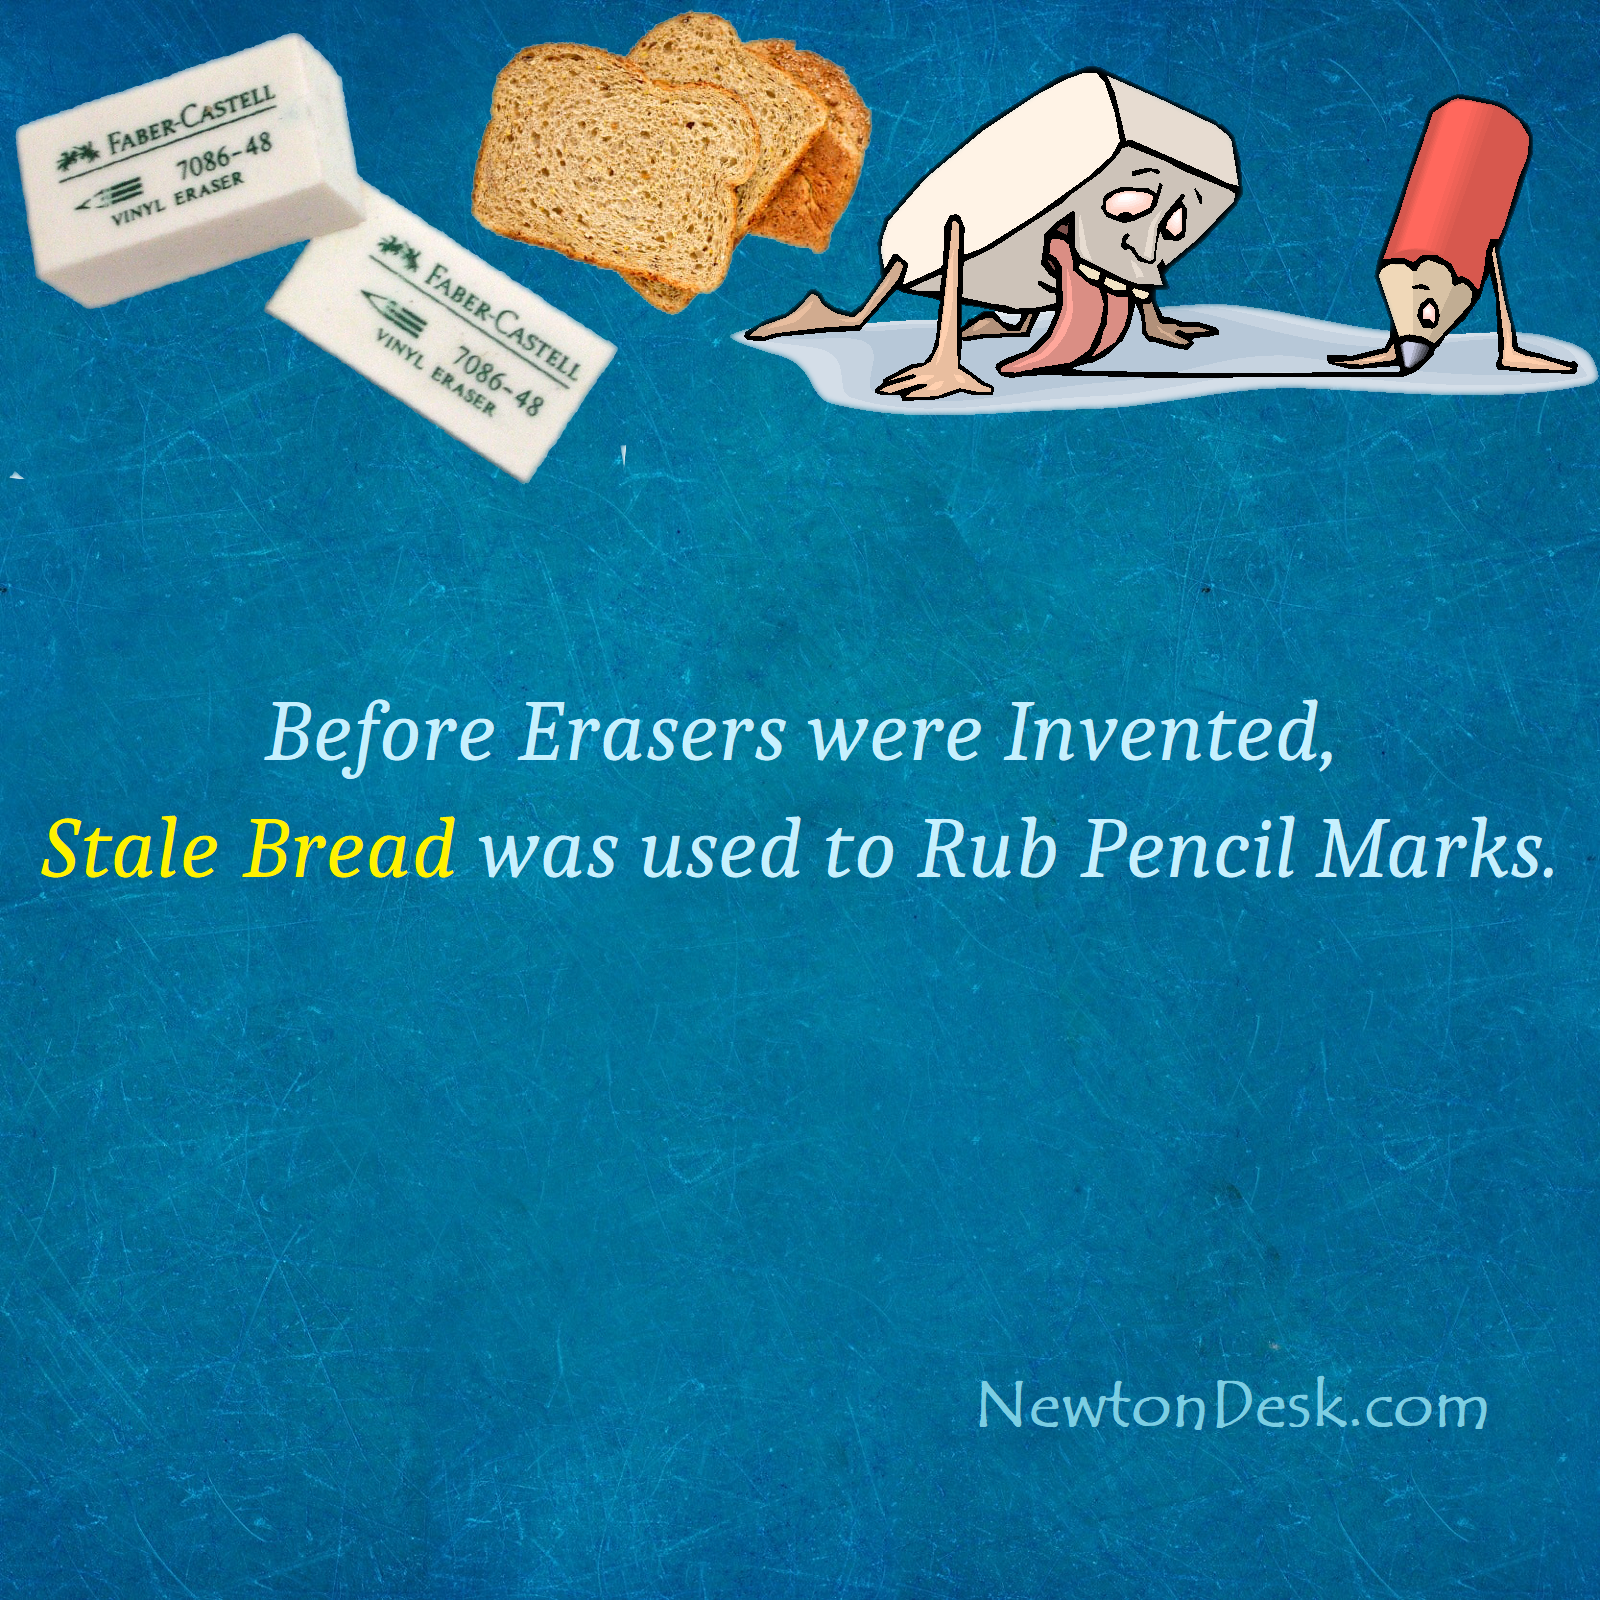 Eraserbread - Stale Bread as an Eraser To Rub Pencil Marks